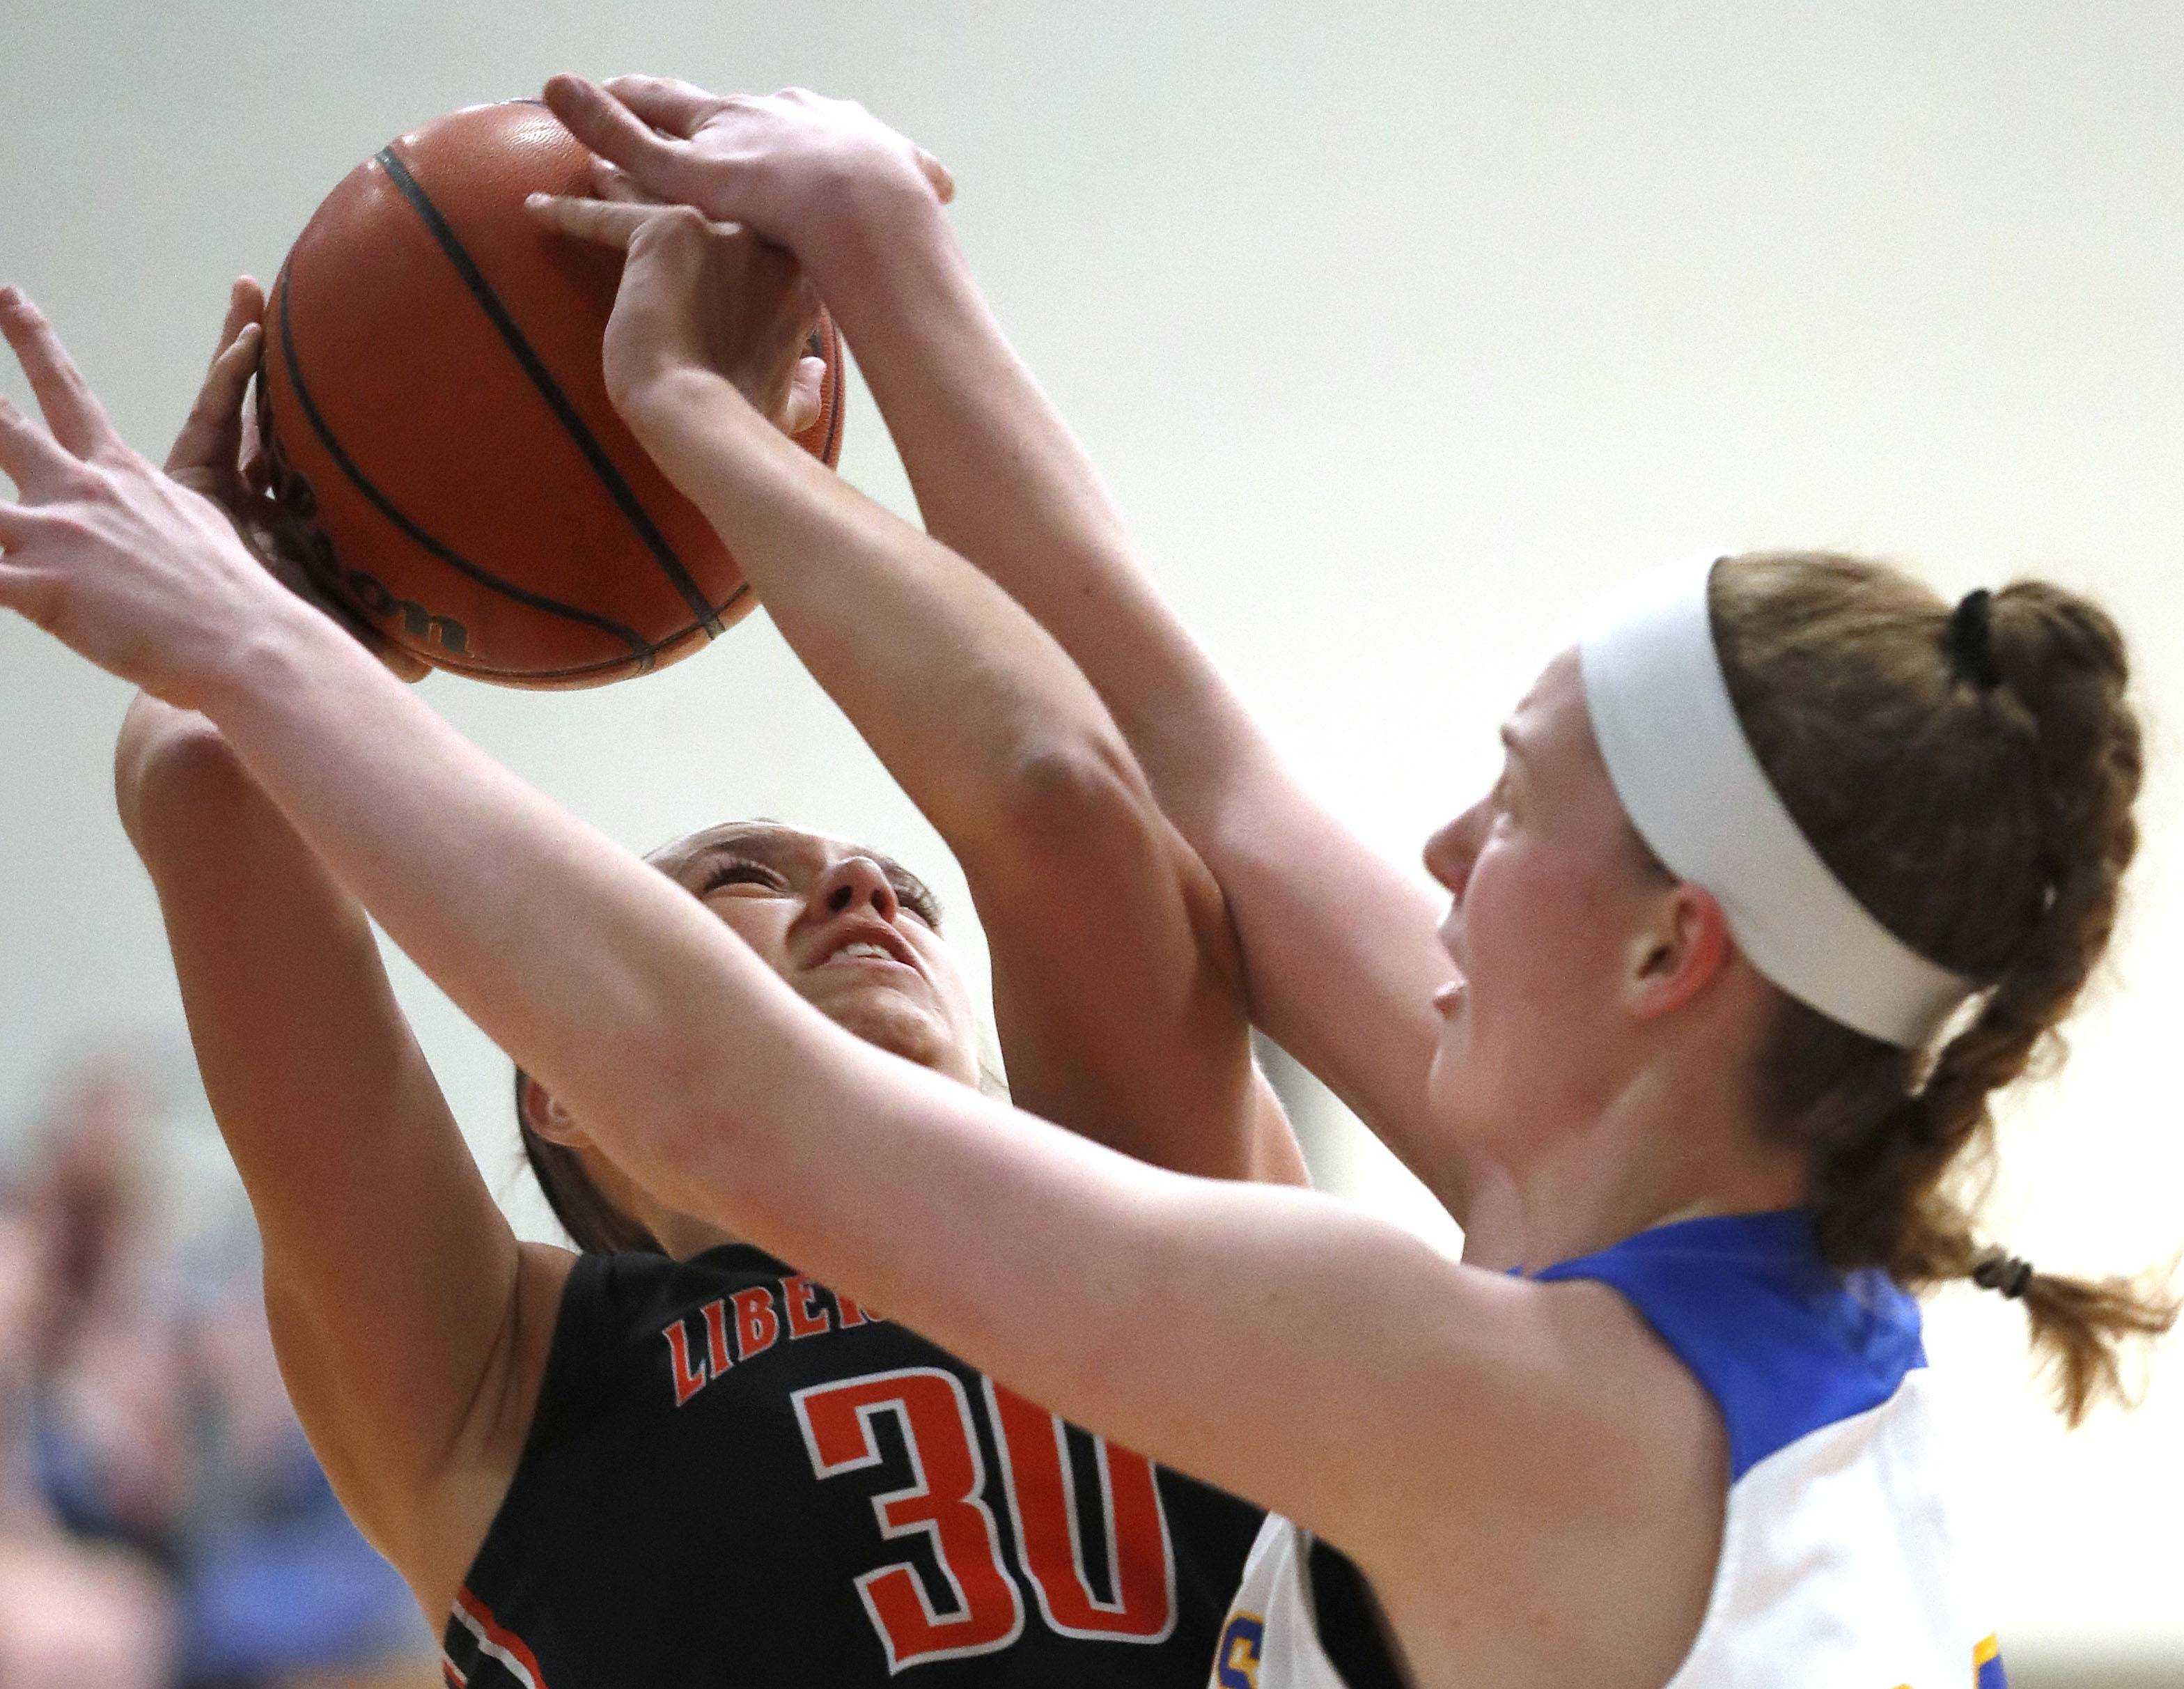 Libertyville's Maddie Spaulding, left, drive on Lake Forest's Ellie Pearson during their game Wednesday night in Lake Forest.